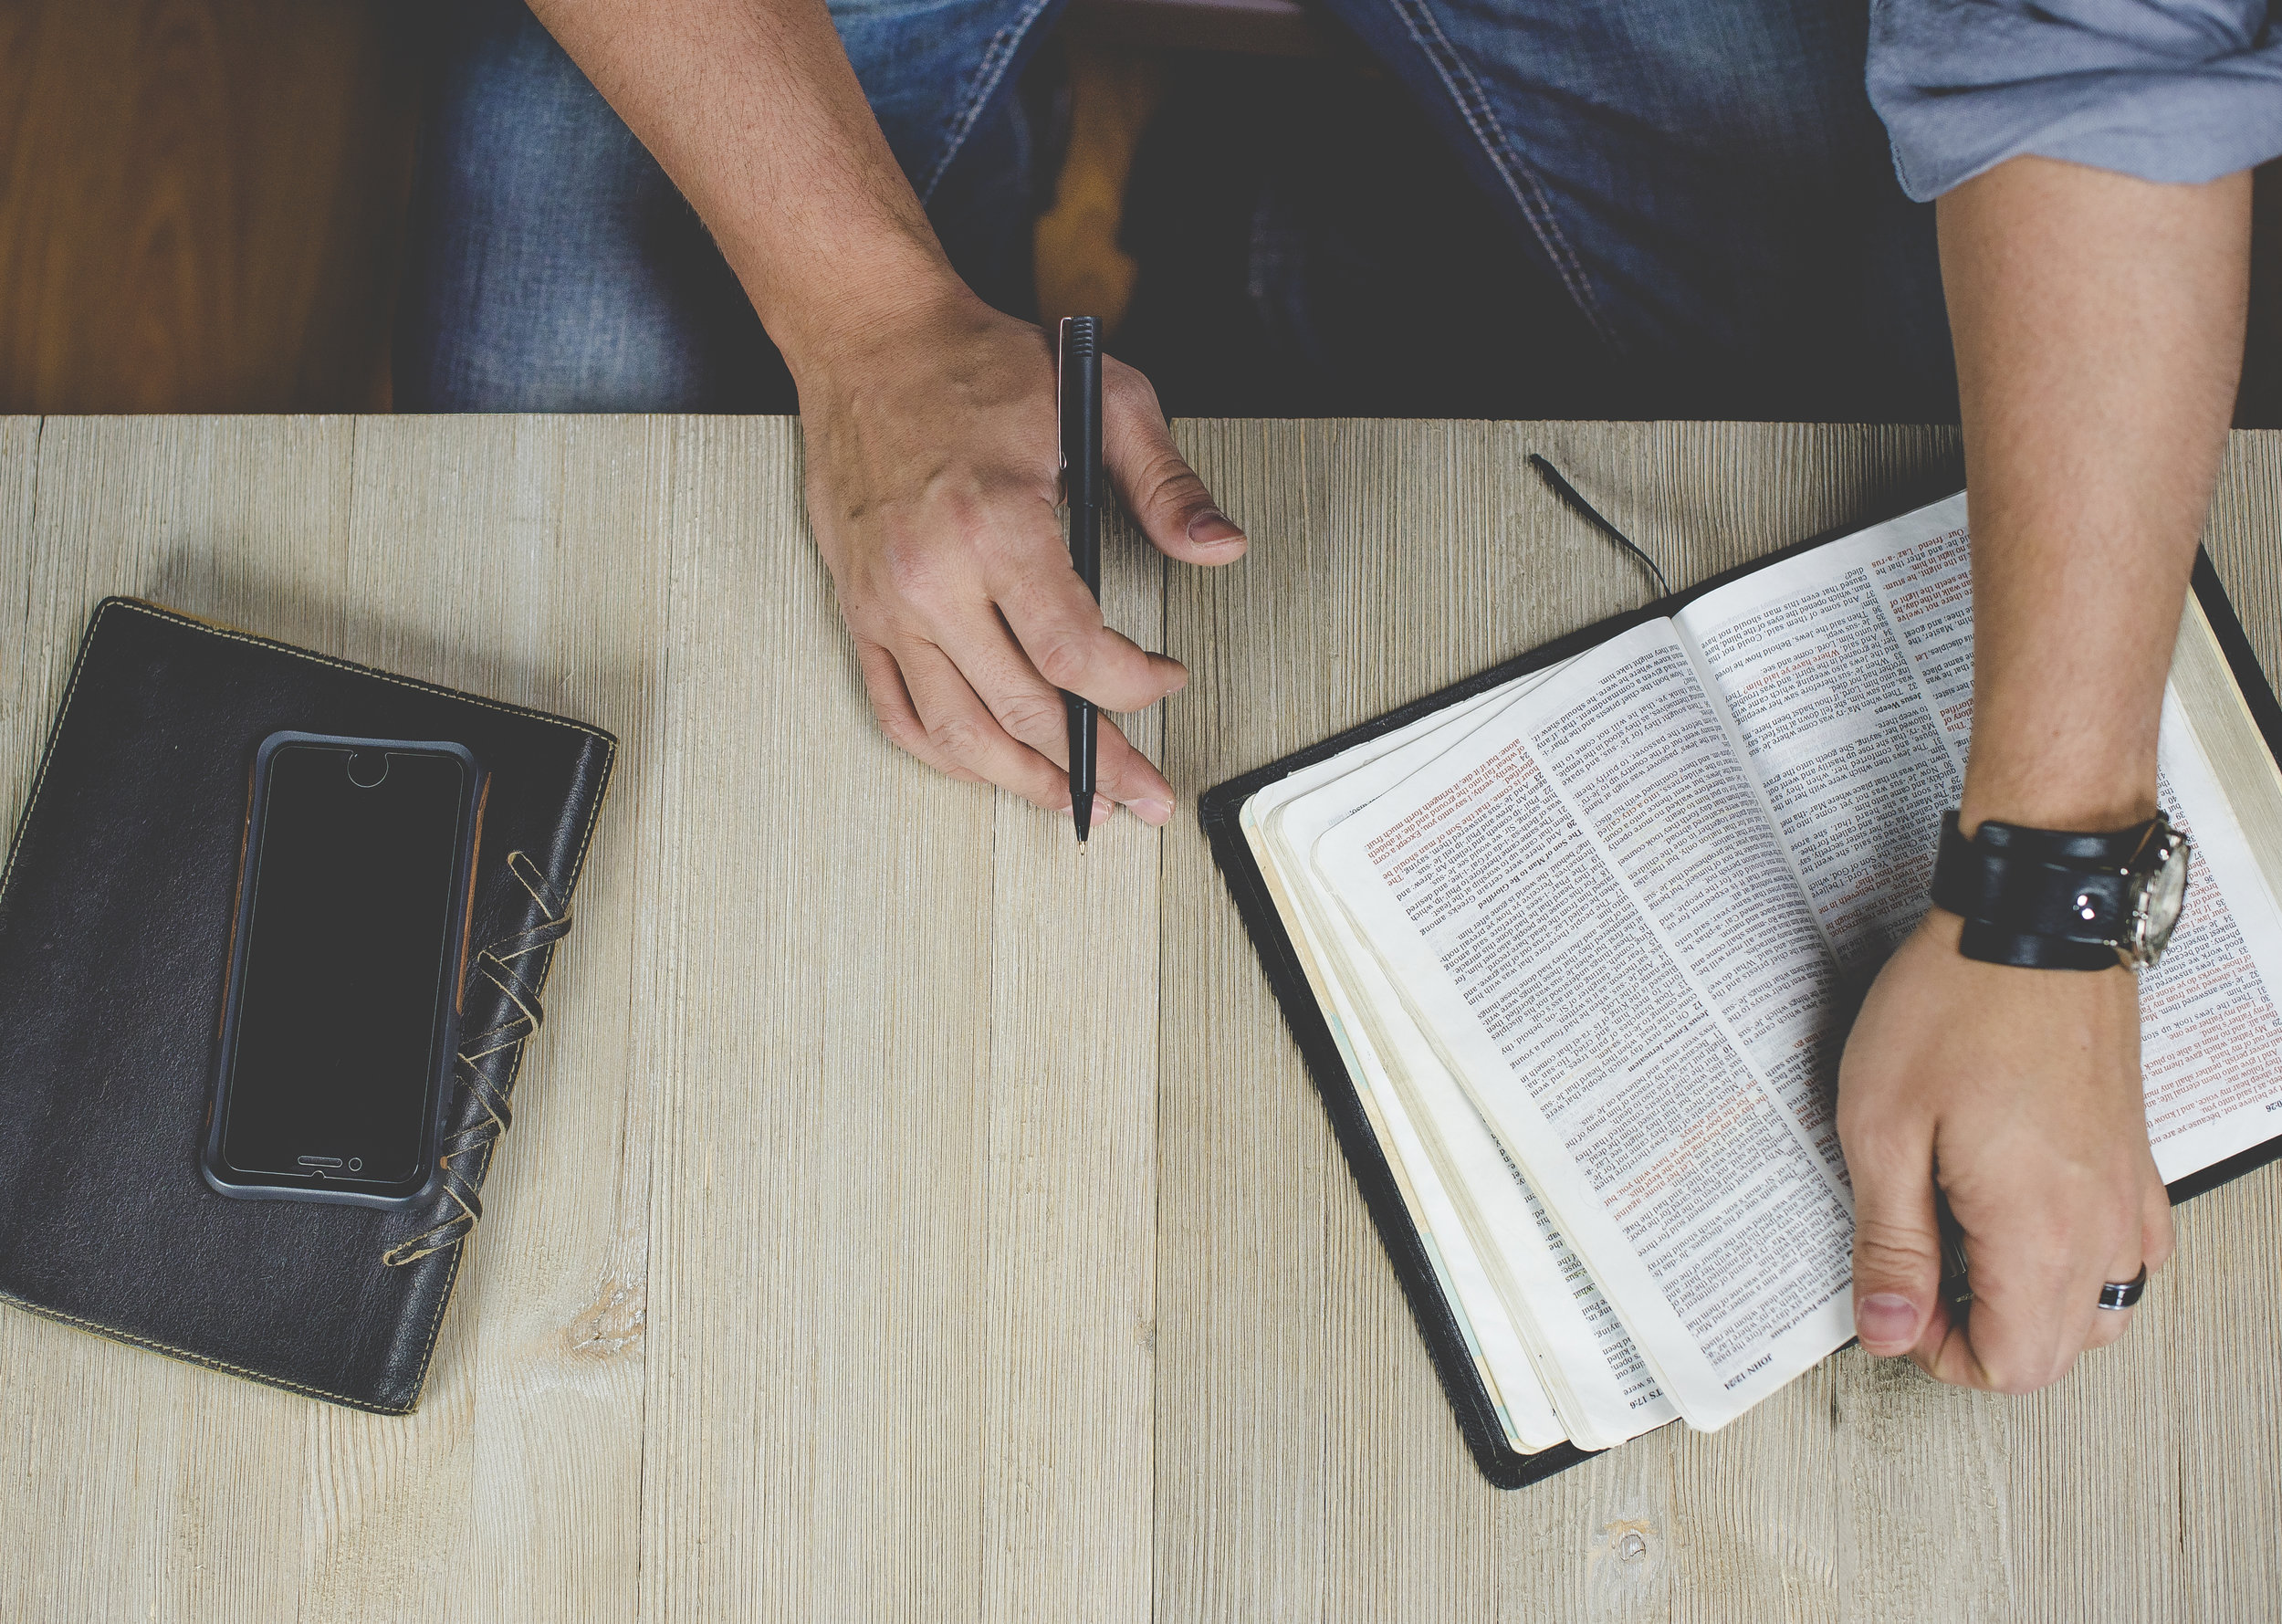 Sermon Archive - Want to catch up on sermons? Listen to all the recorded sermons, or search archives by series and topics.